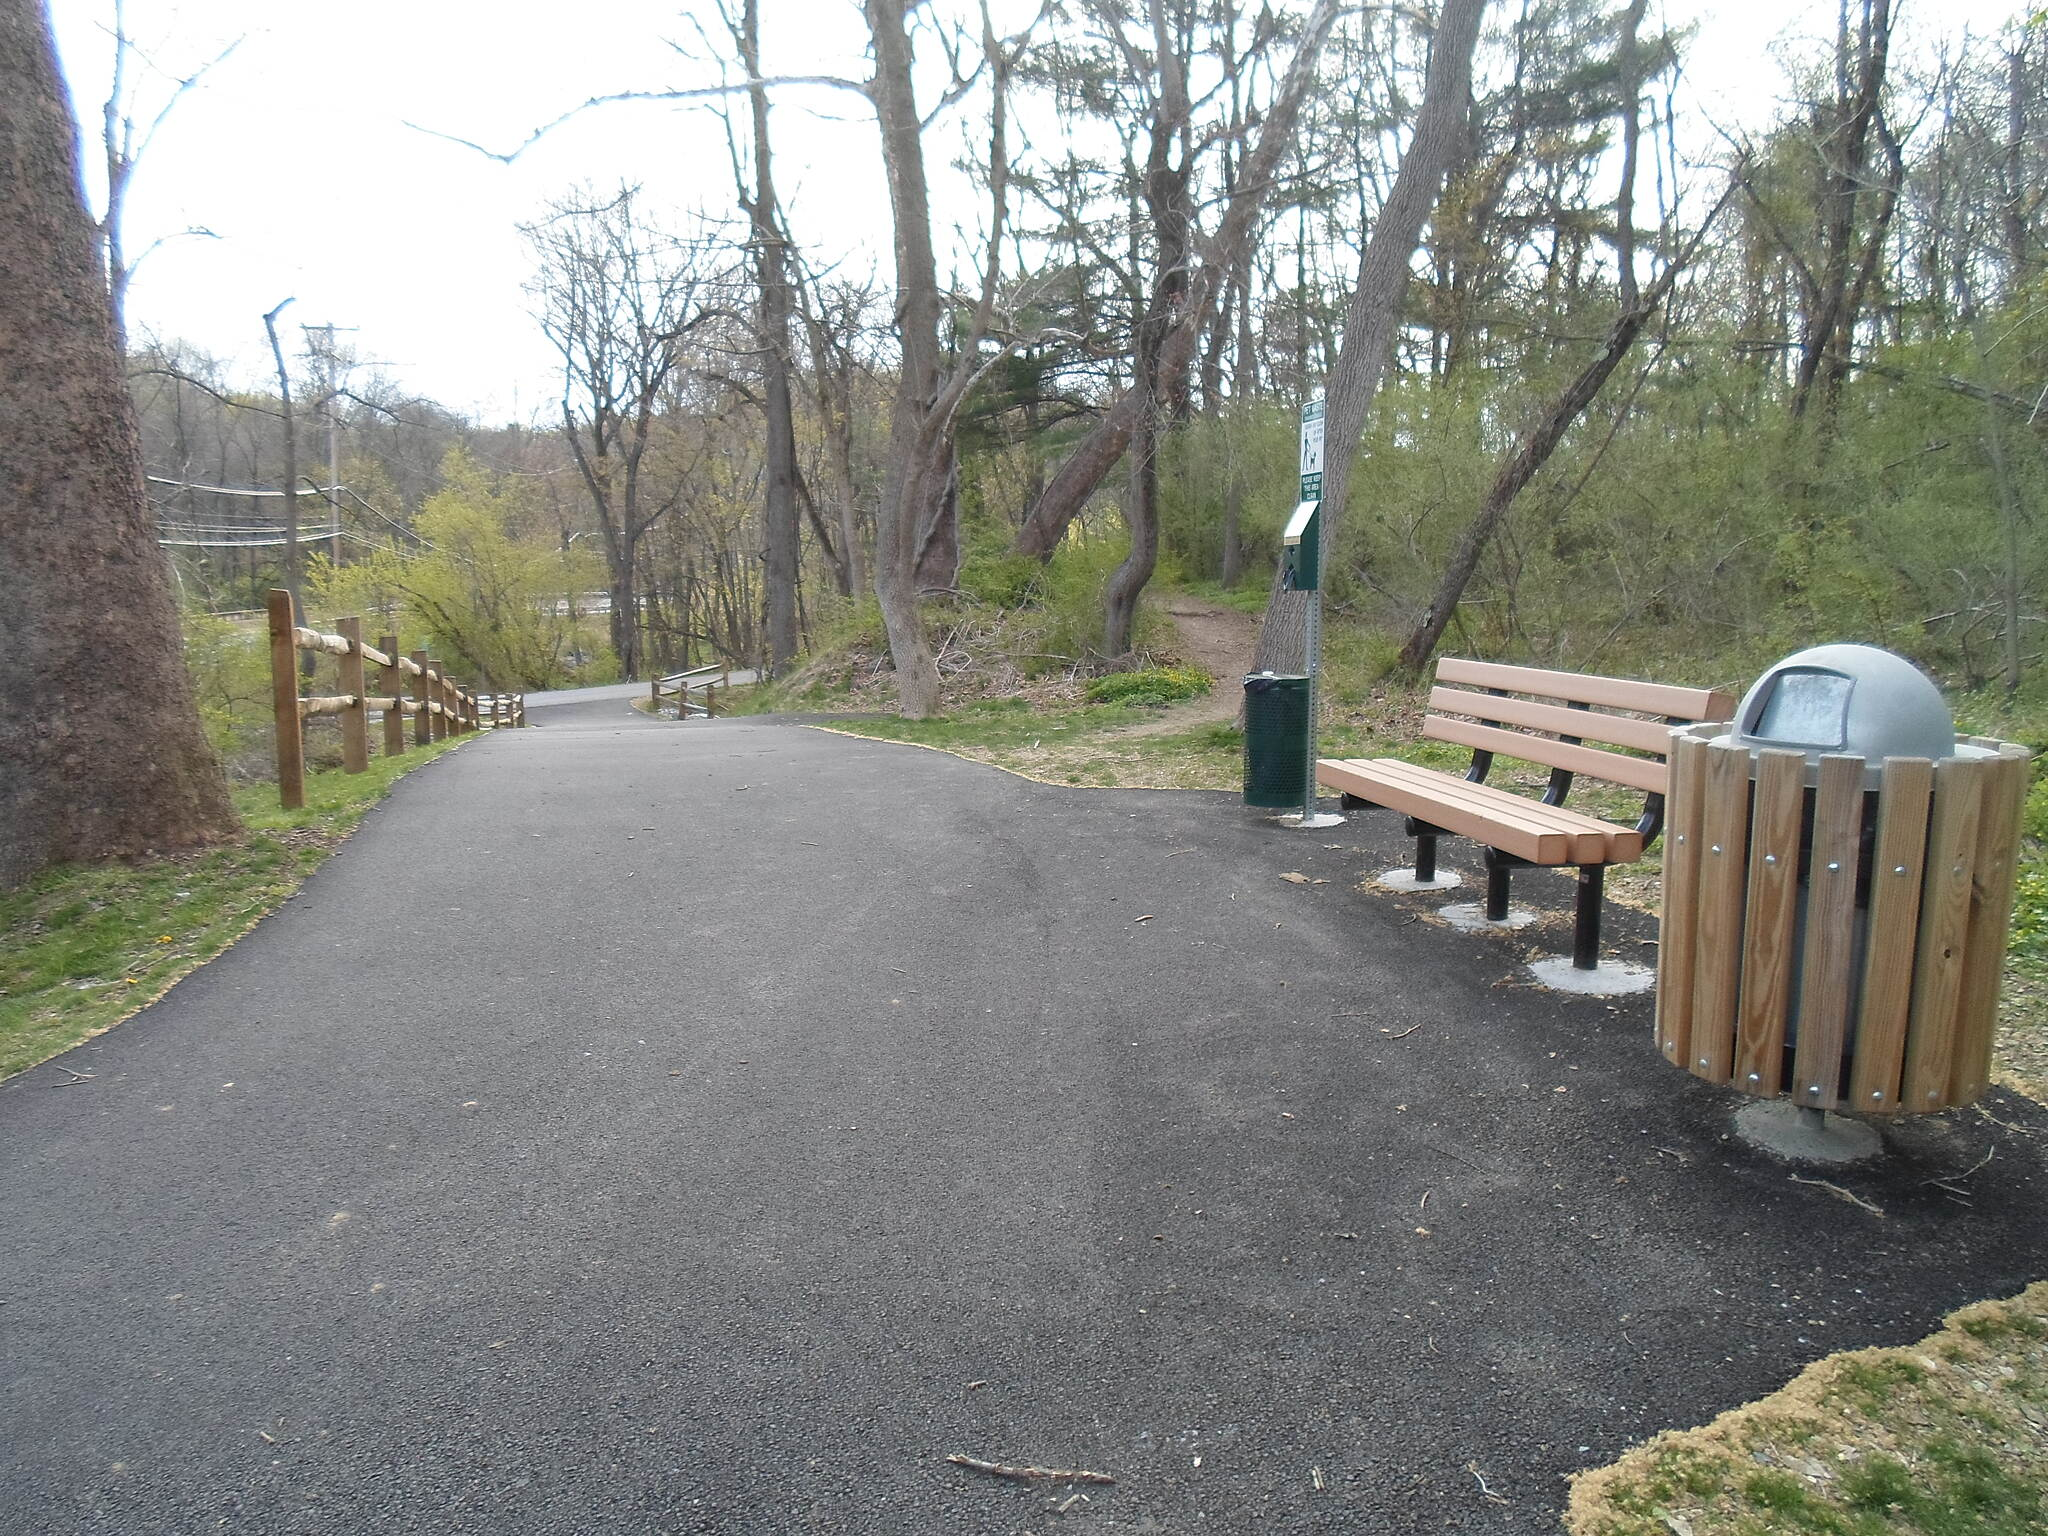 East Branch Brandywine Trail East Branch Brandywine Trail Bench and trash can near the trail's southern terminus. Taken April 2015.